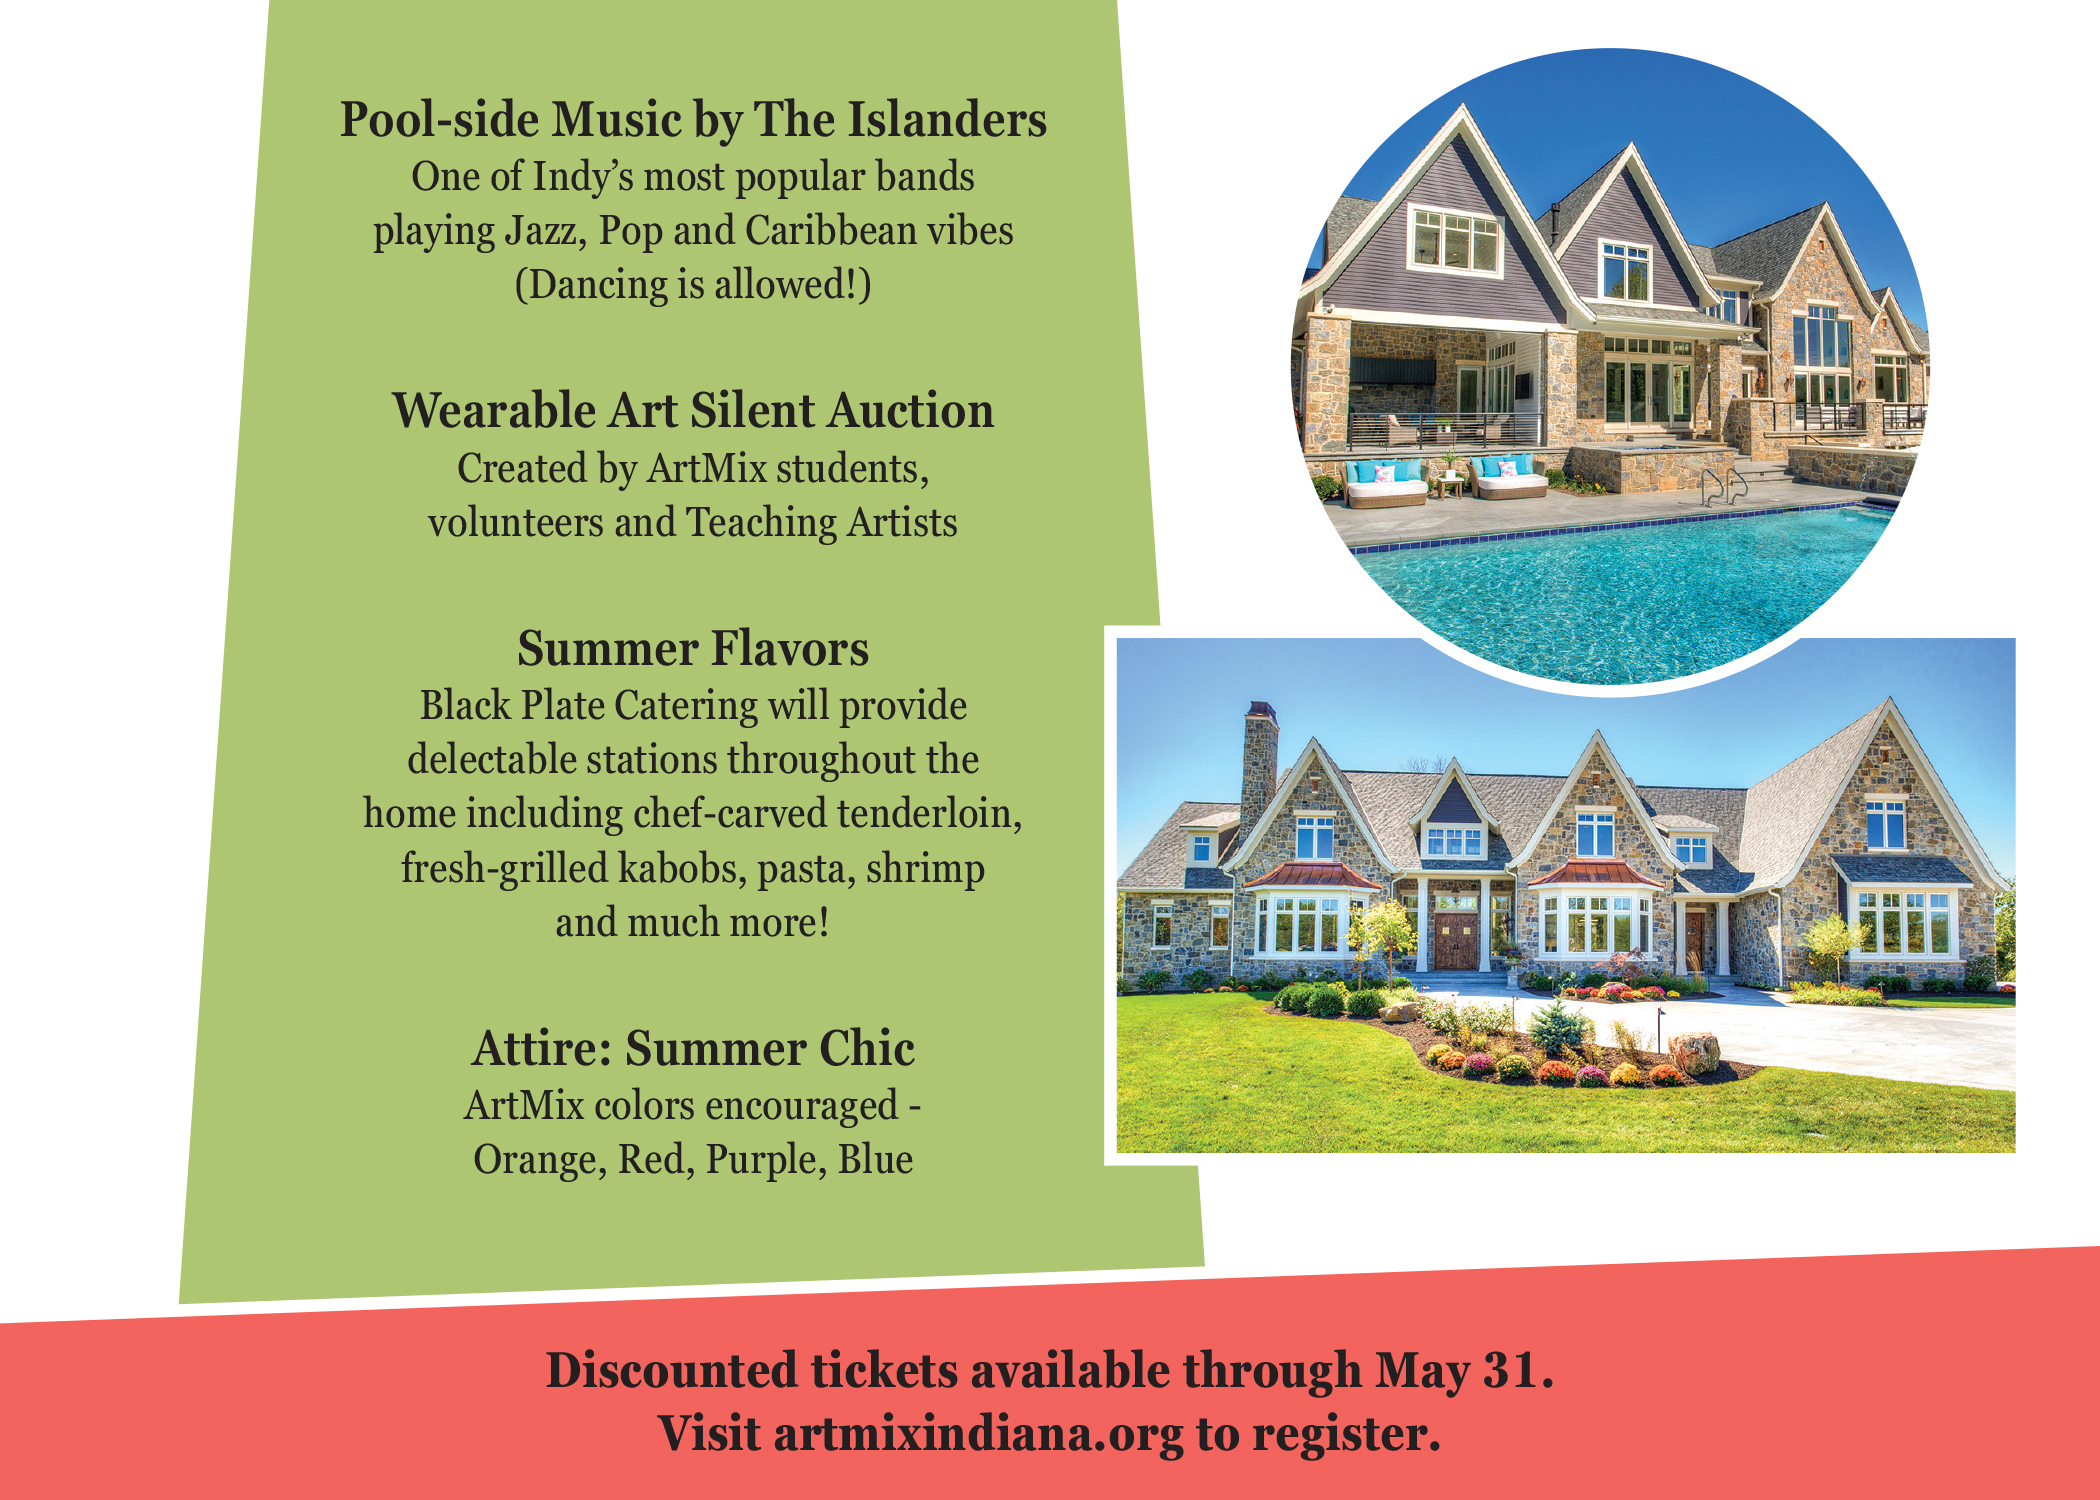 Pool-side music by The Islanders: One of Indy's most popular bands playing Jazz, Pop and Caribbean vibes (Dancing is allowed!) Wearable Art Silent Auction: Created by ArtMix students, volunteers and Teaching Artists. Summer Flavors: Black Plate Catering w